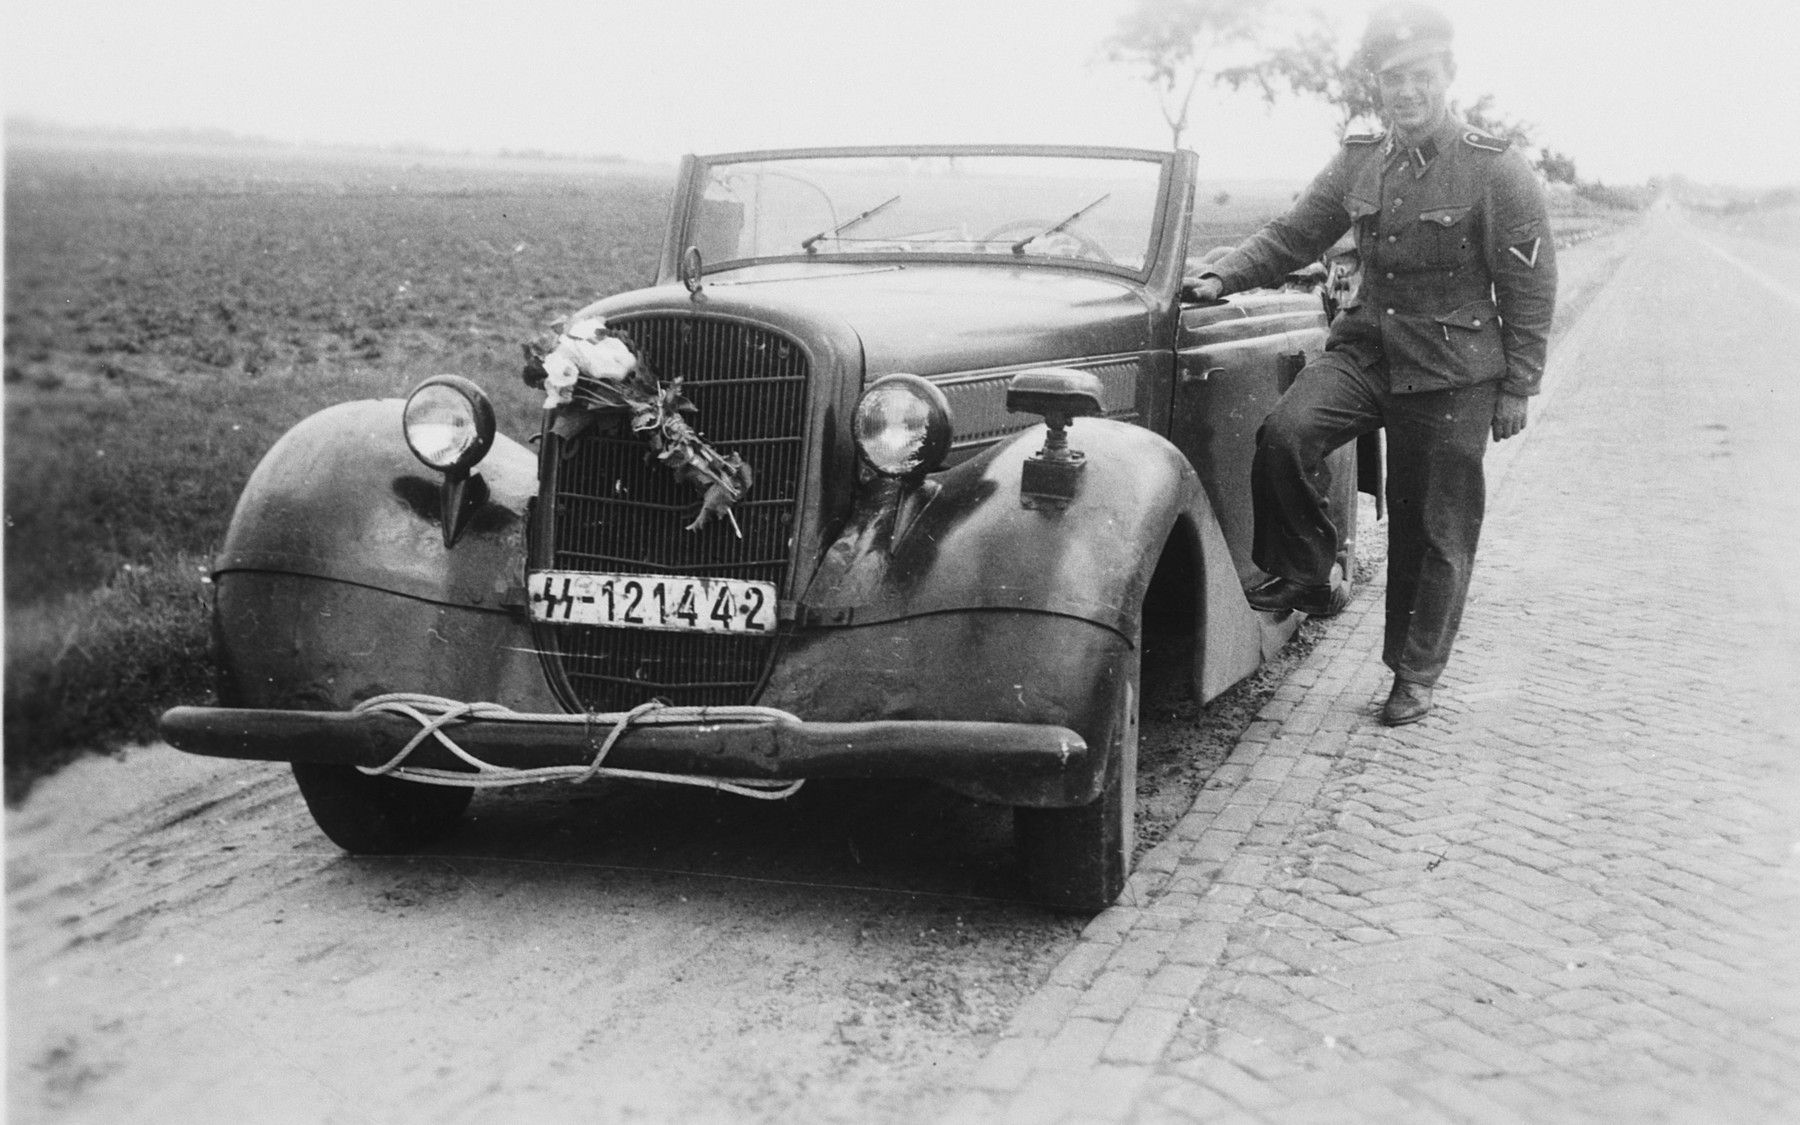 """A SS officer [perhaps Max Schmidt] stands next to an automobile with an SS lisence plate.   The caption of the SS-Archiv says """"Abschied vom Osten, auf der Fahrt ins Reich - Juli 1942"""" (Parting from east, on the trip to the """"Reich"""" July 1942)."""